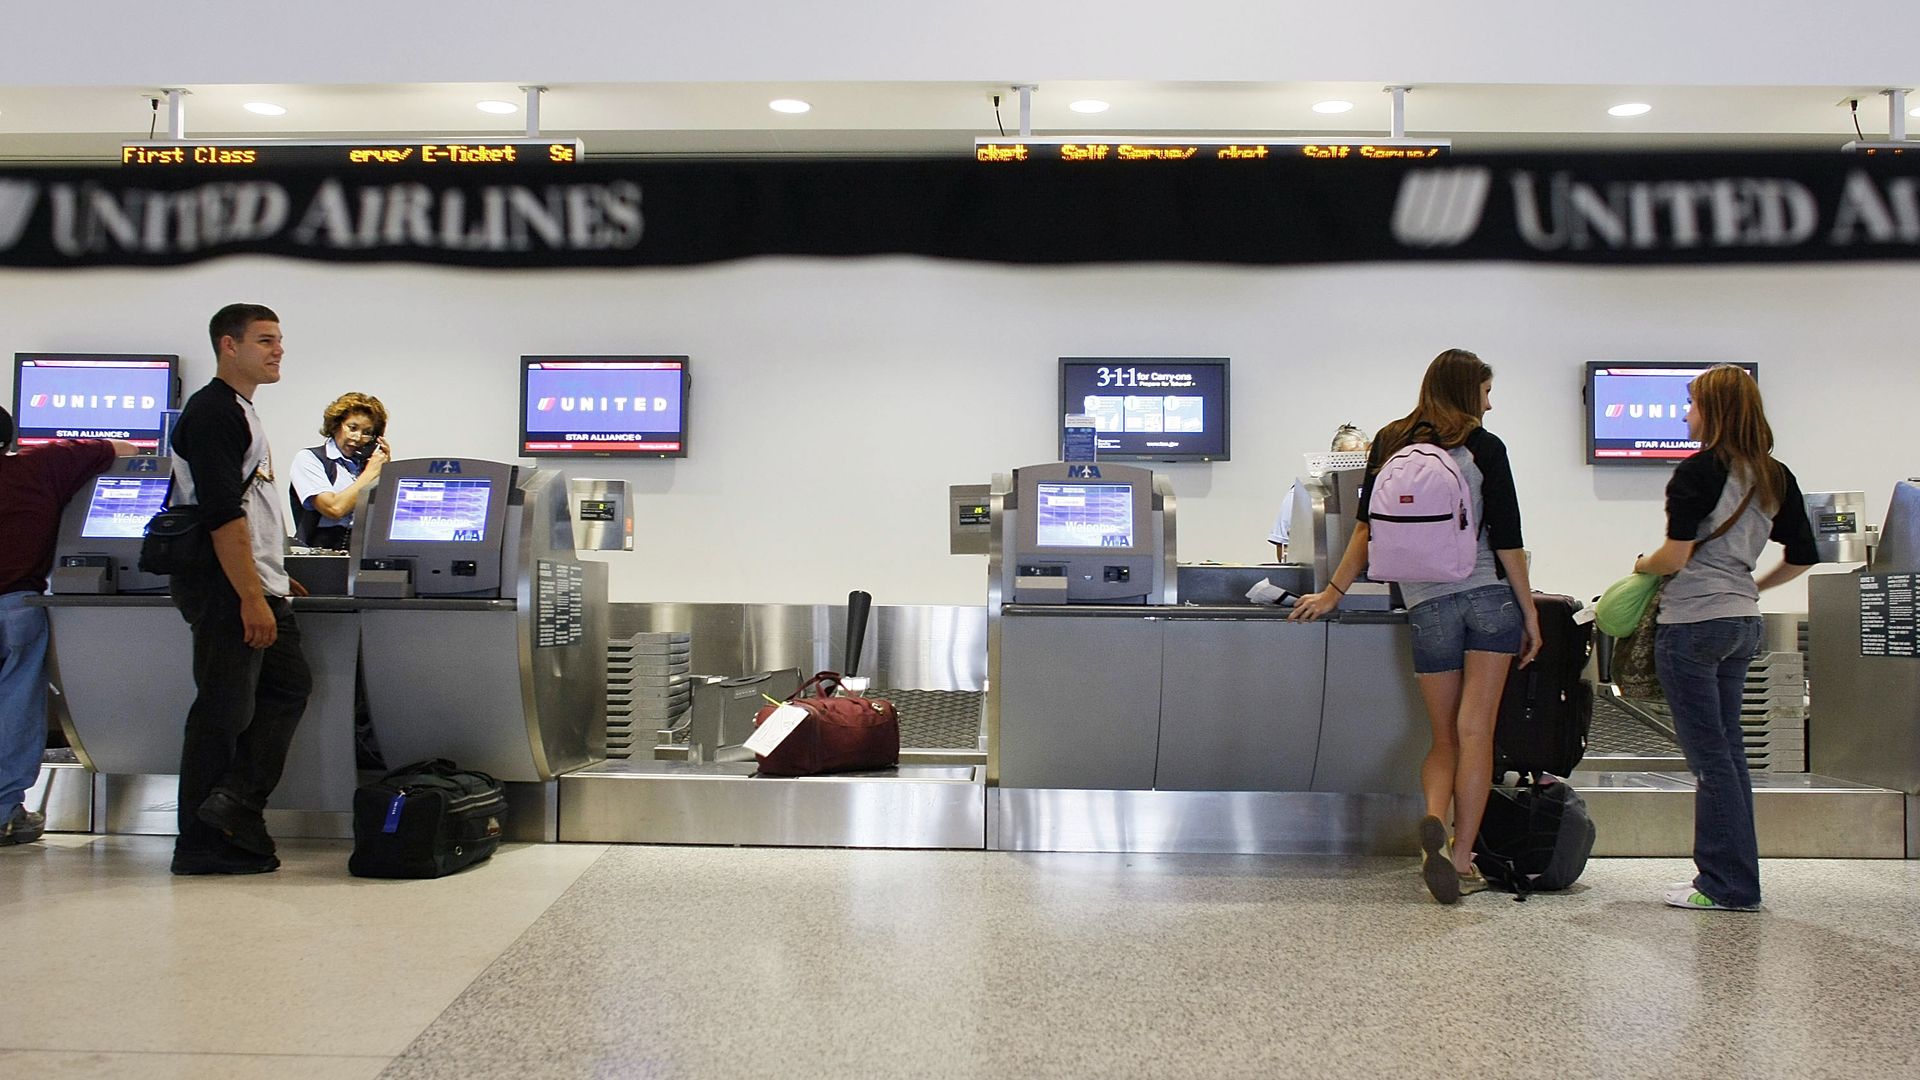 In this file photo, passengers check in with their baggage at the United Airlines counter at the Miami International Airport in Miami. (Credit: Joe Raedle/Getty Images)